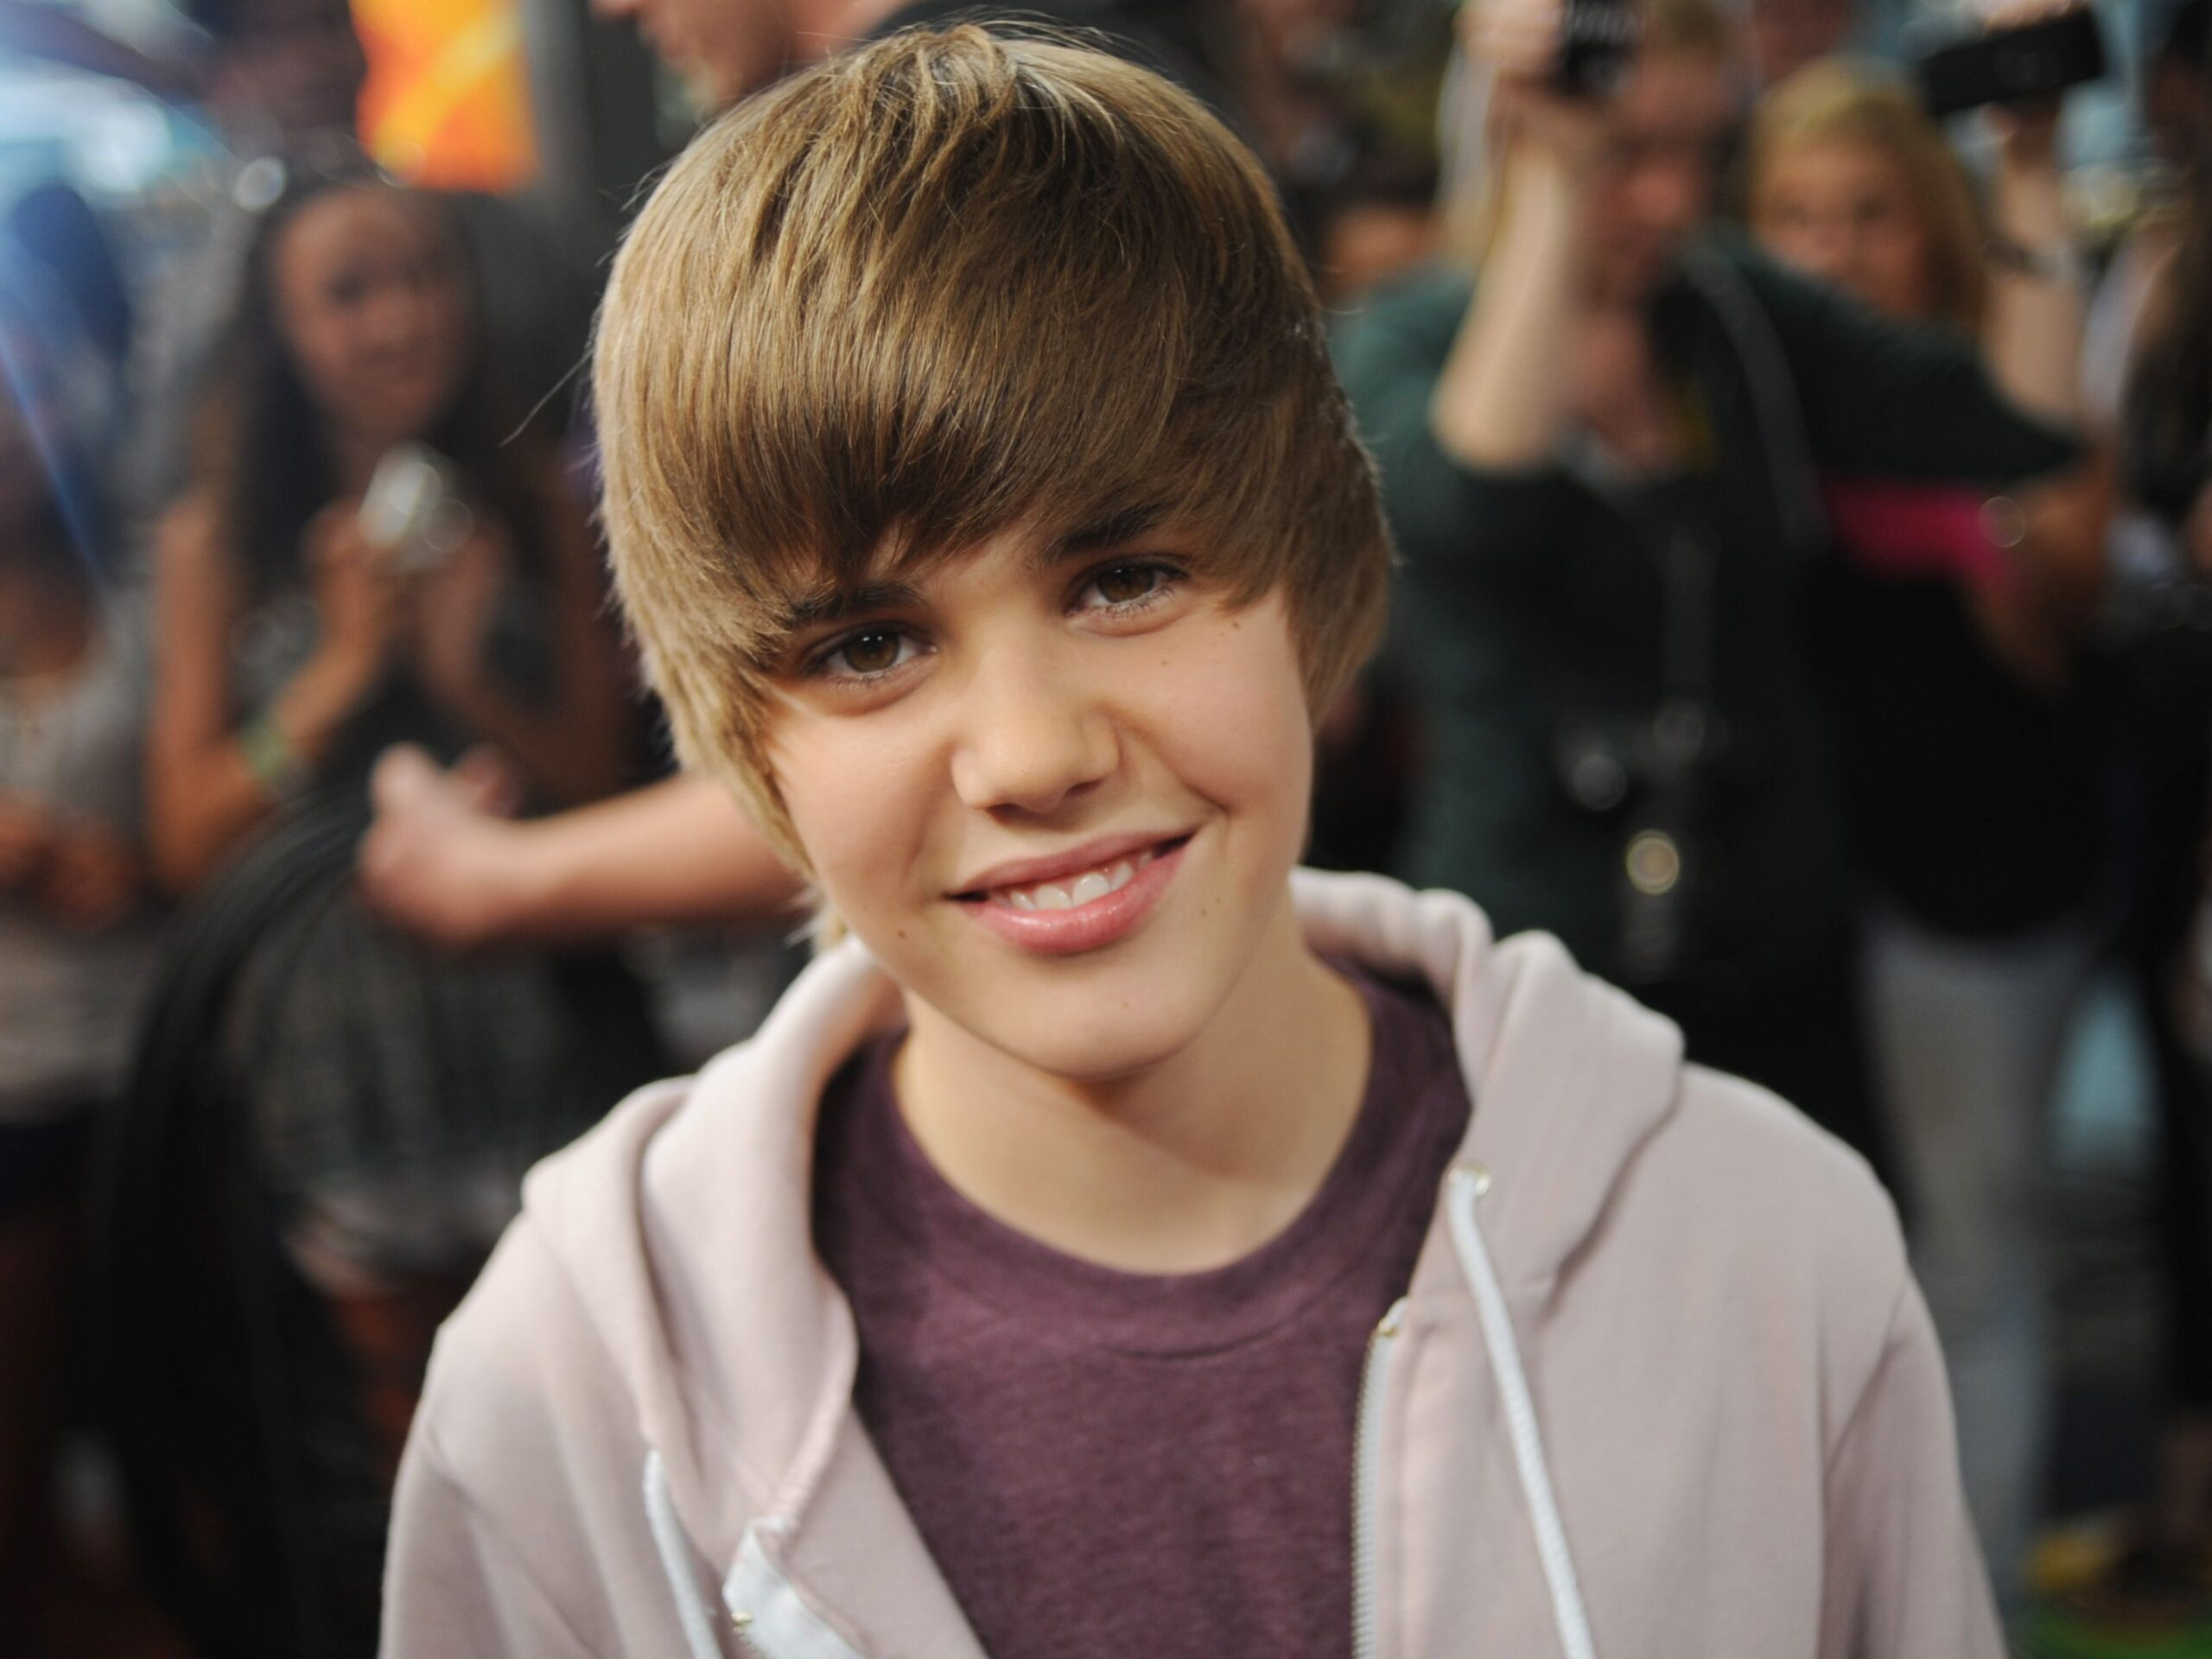 Justin Bieber signed his first contract when he was only 14 years old